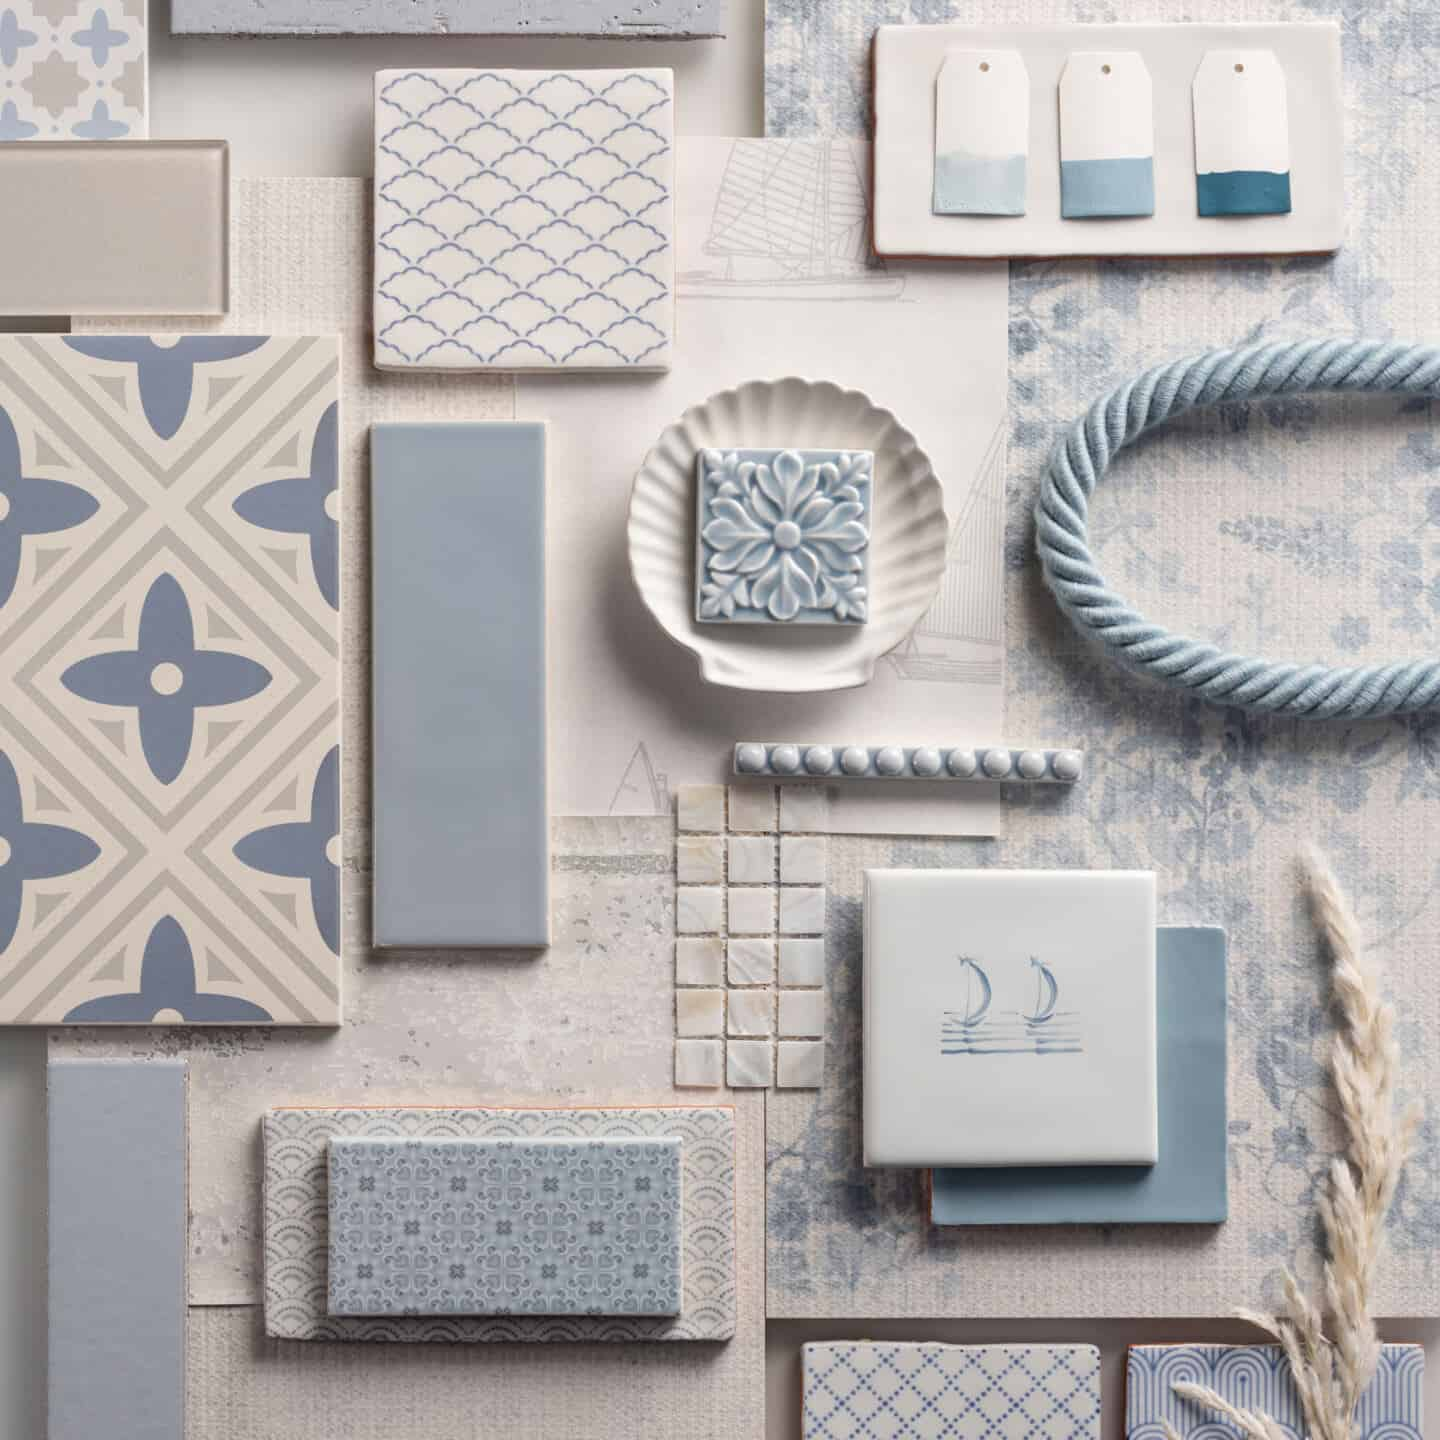 Interiors Trends for 2021- Staycation - Original Style Mood Board showing blue and white tiles, a ceramic scallop shell and some blue rope